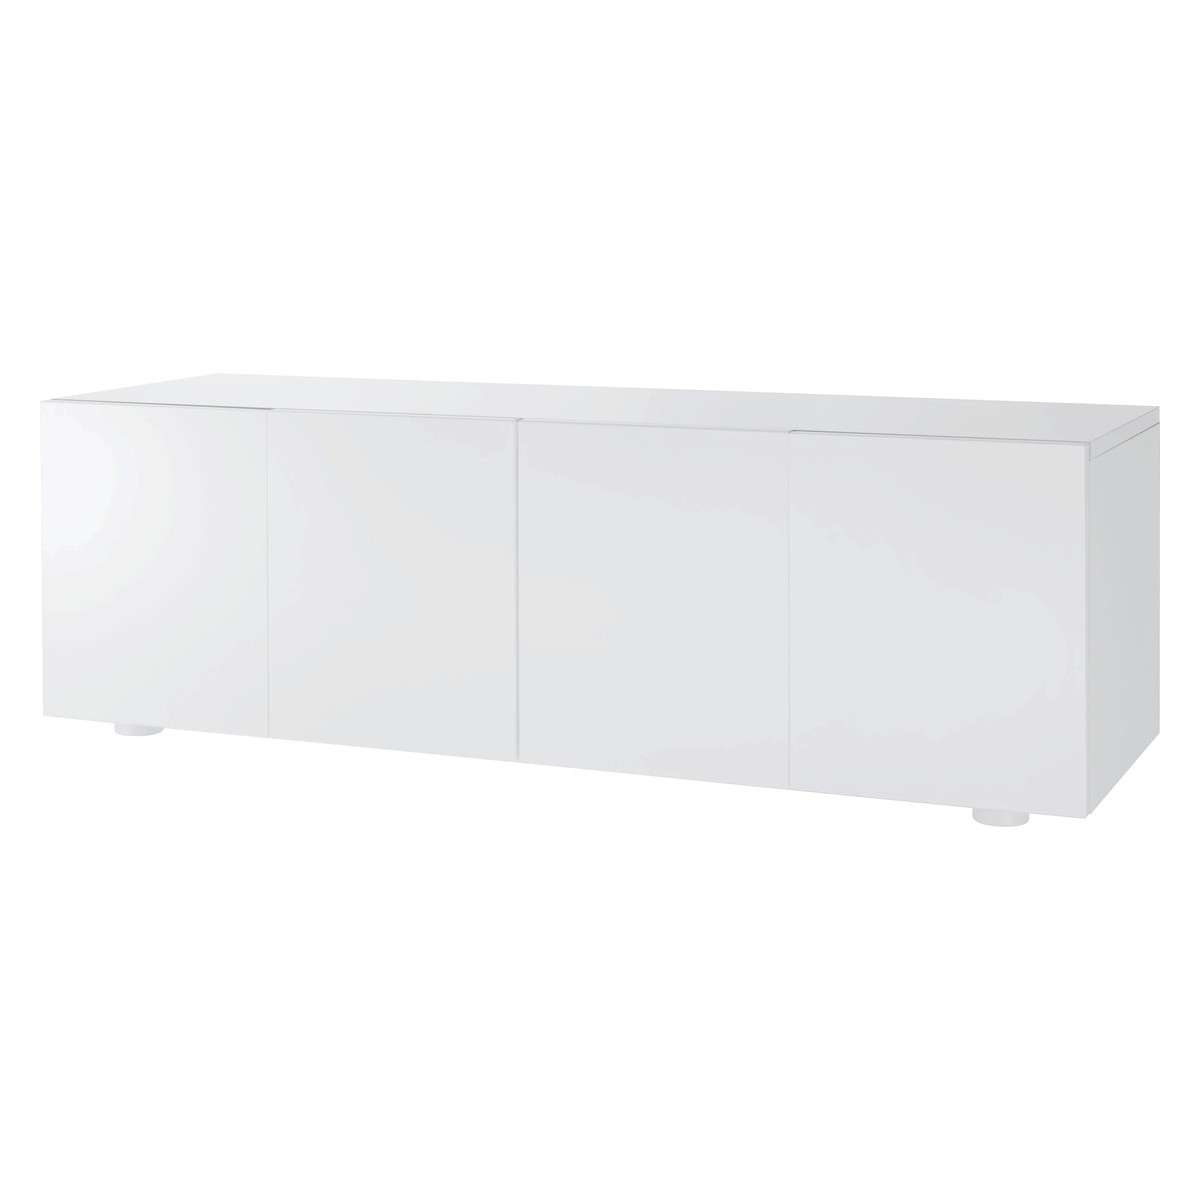 Aspen White High Gloss Long Cabinet | Buy Now At Habitat Uk Within Large White Sideboards (View 15 of 20)